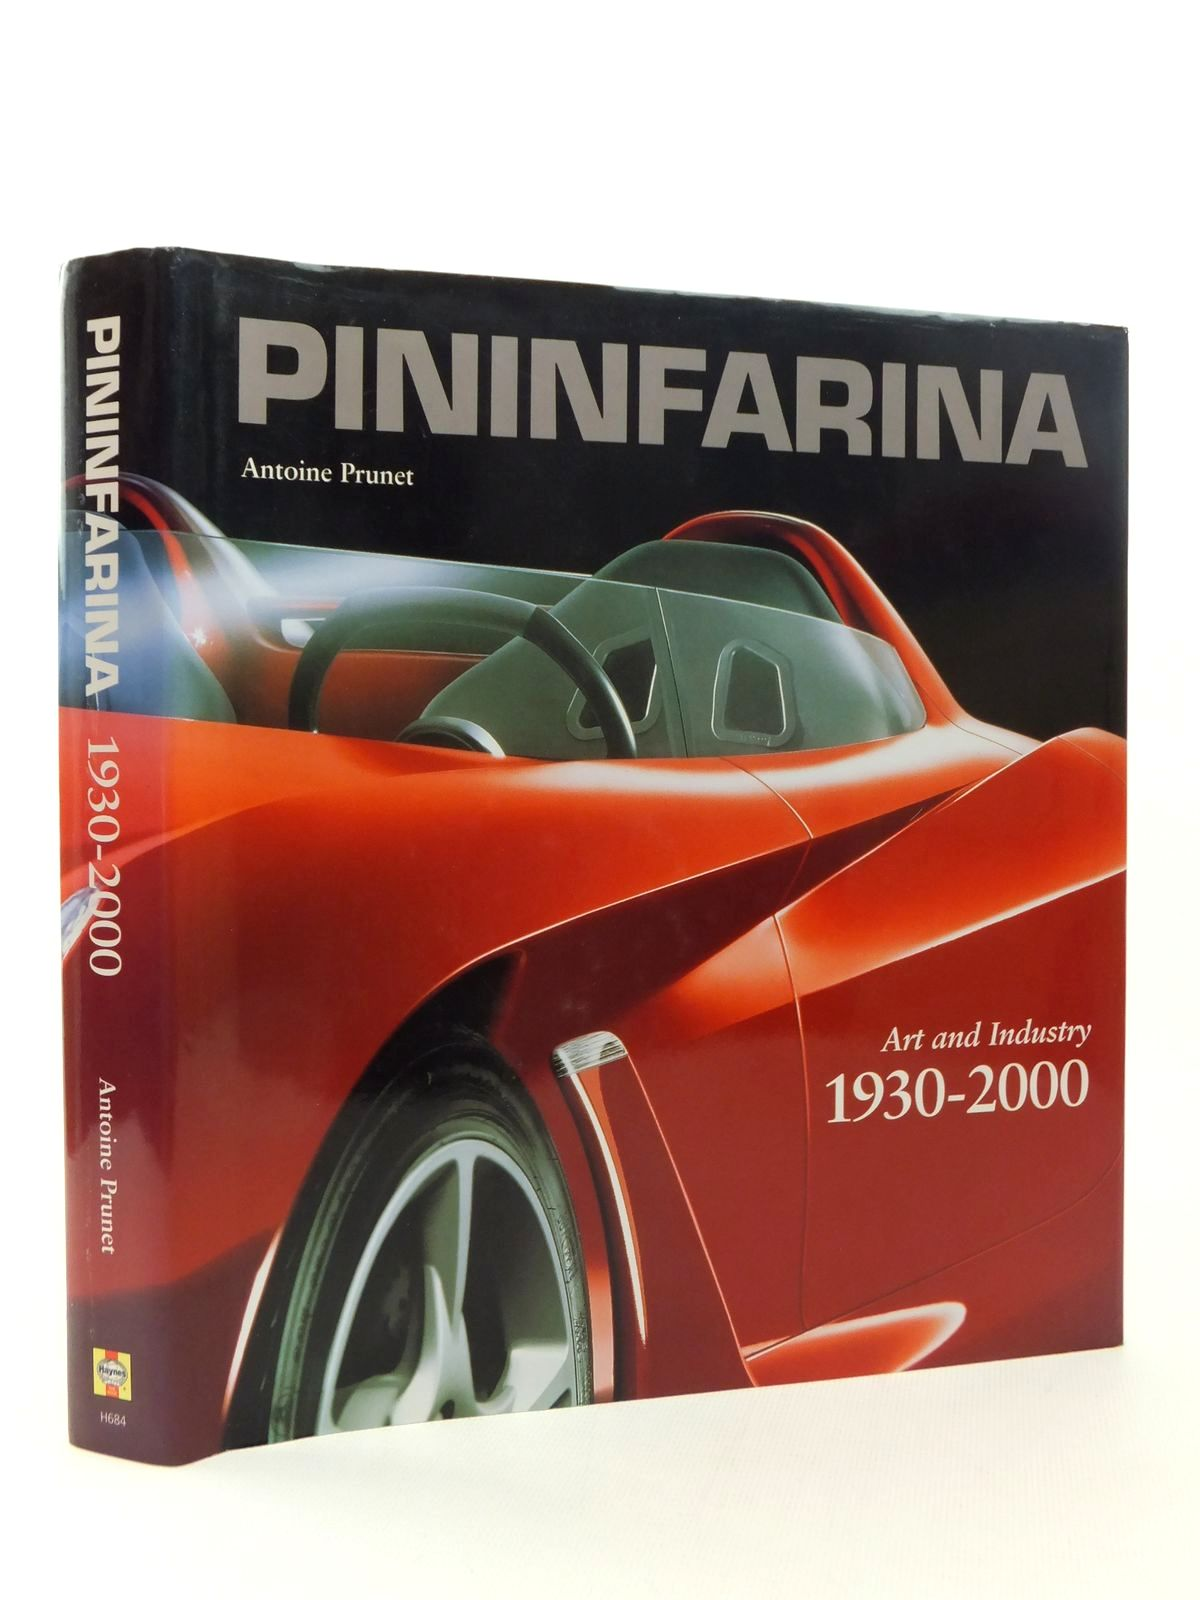 Photo of PININFARINA ART AND INDUSTRY 1930-2000 written by Prunet, Antoine published by Haynes Publishing (STOCK CODE: 1609598)  for sale by Stella & Rose's Books